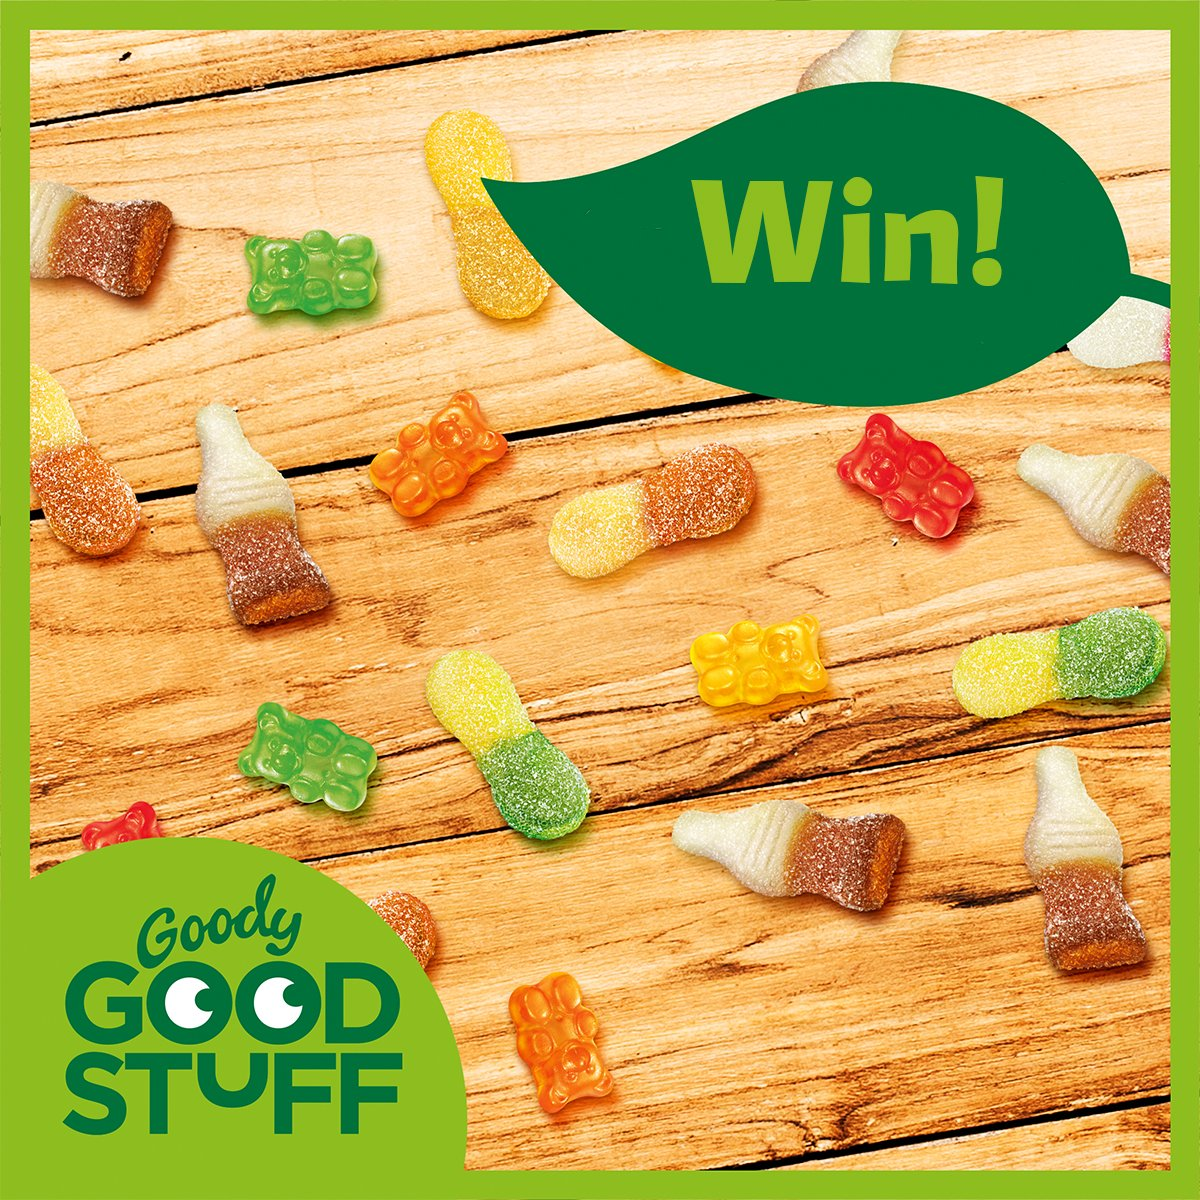 As it's #WorldKindessDay RT & Follow for your chance to win all 8 flavours! #vegan #vegetarian #FF #win #sweets https://t.co/I06puooDNt